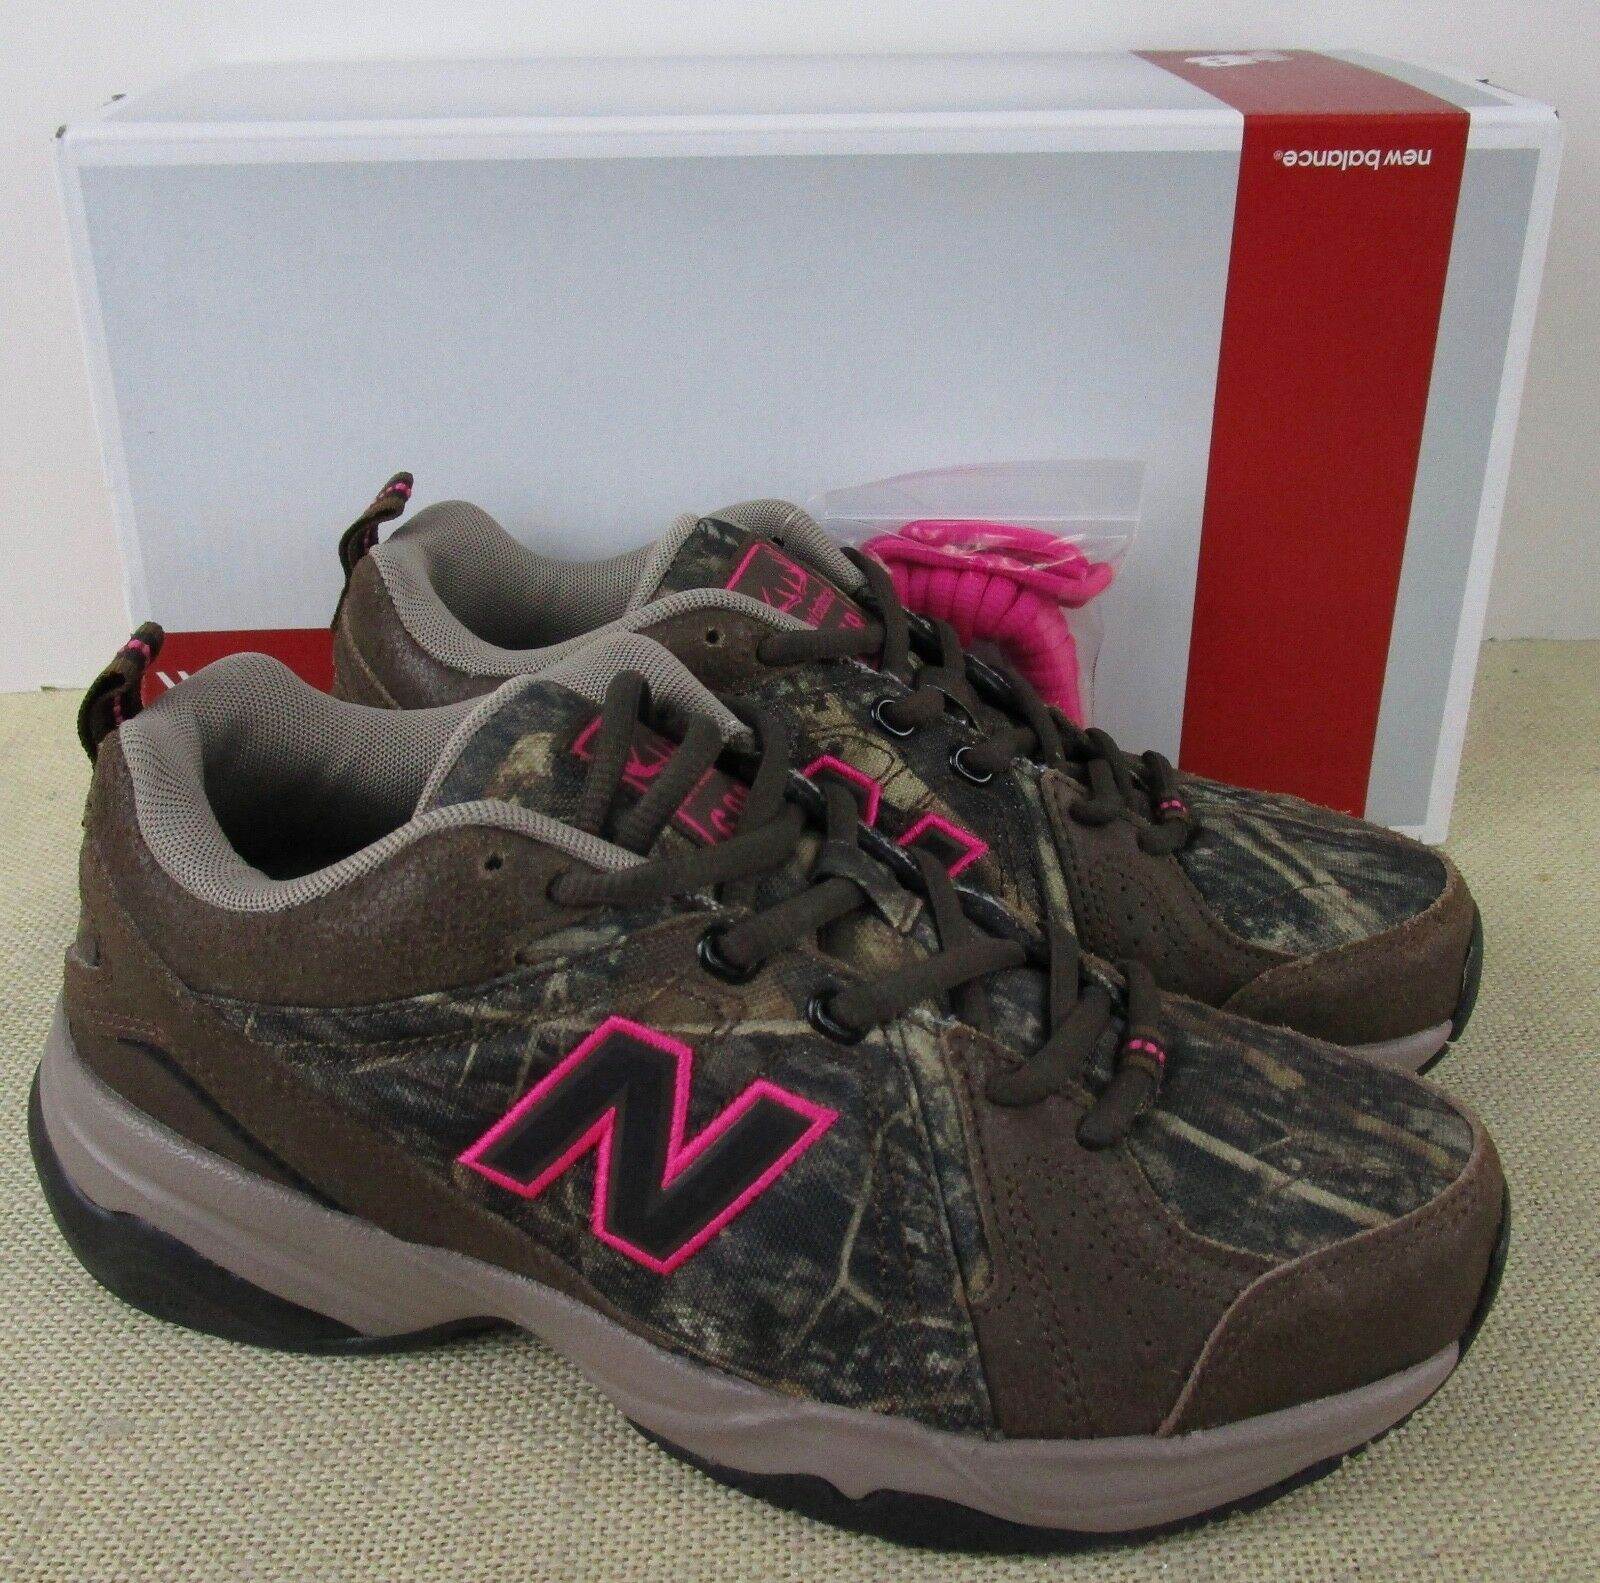 NEW BALANCE WX608V4C WOMEN'S BROWN CAMO SNEAKERS NEW IN BOX